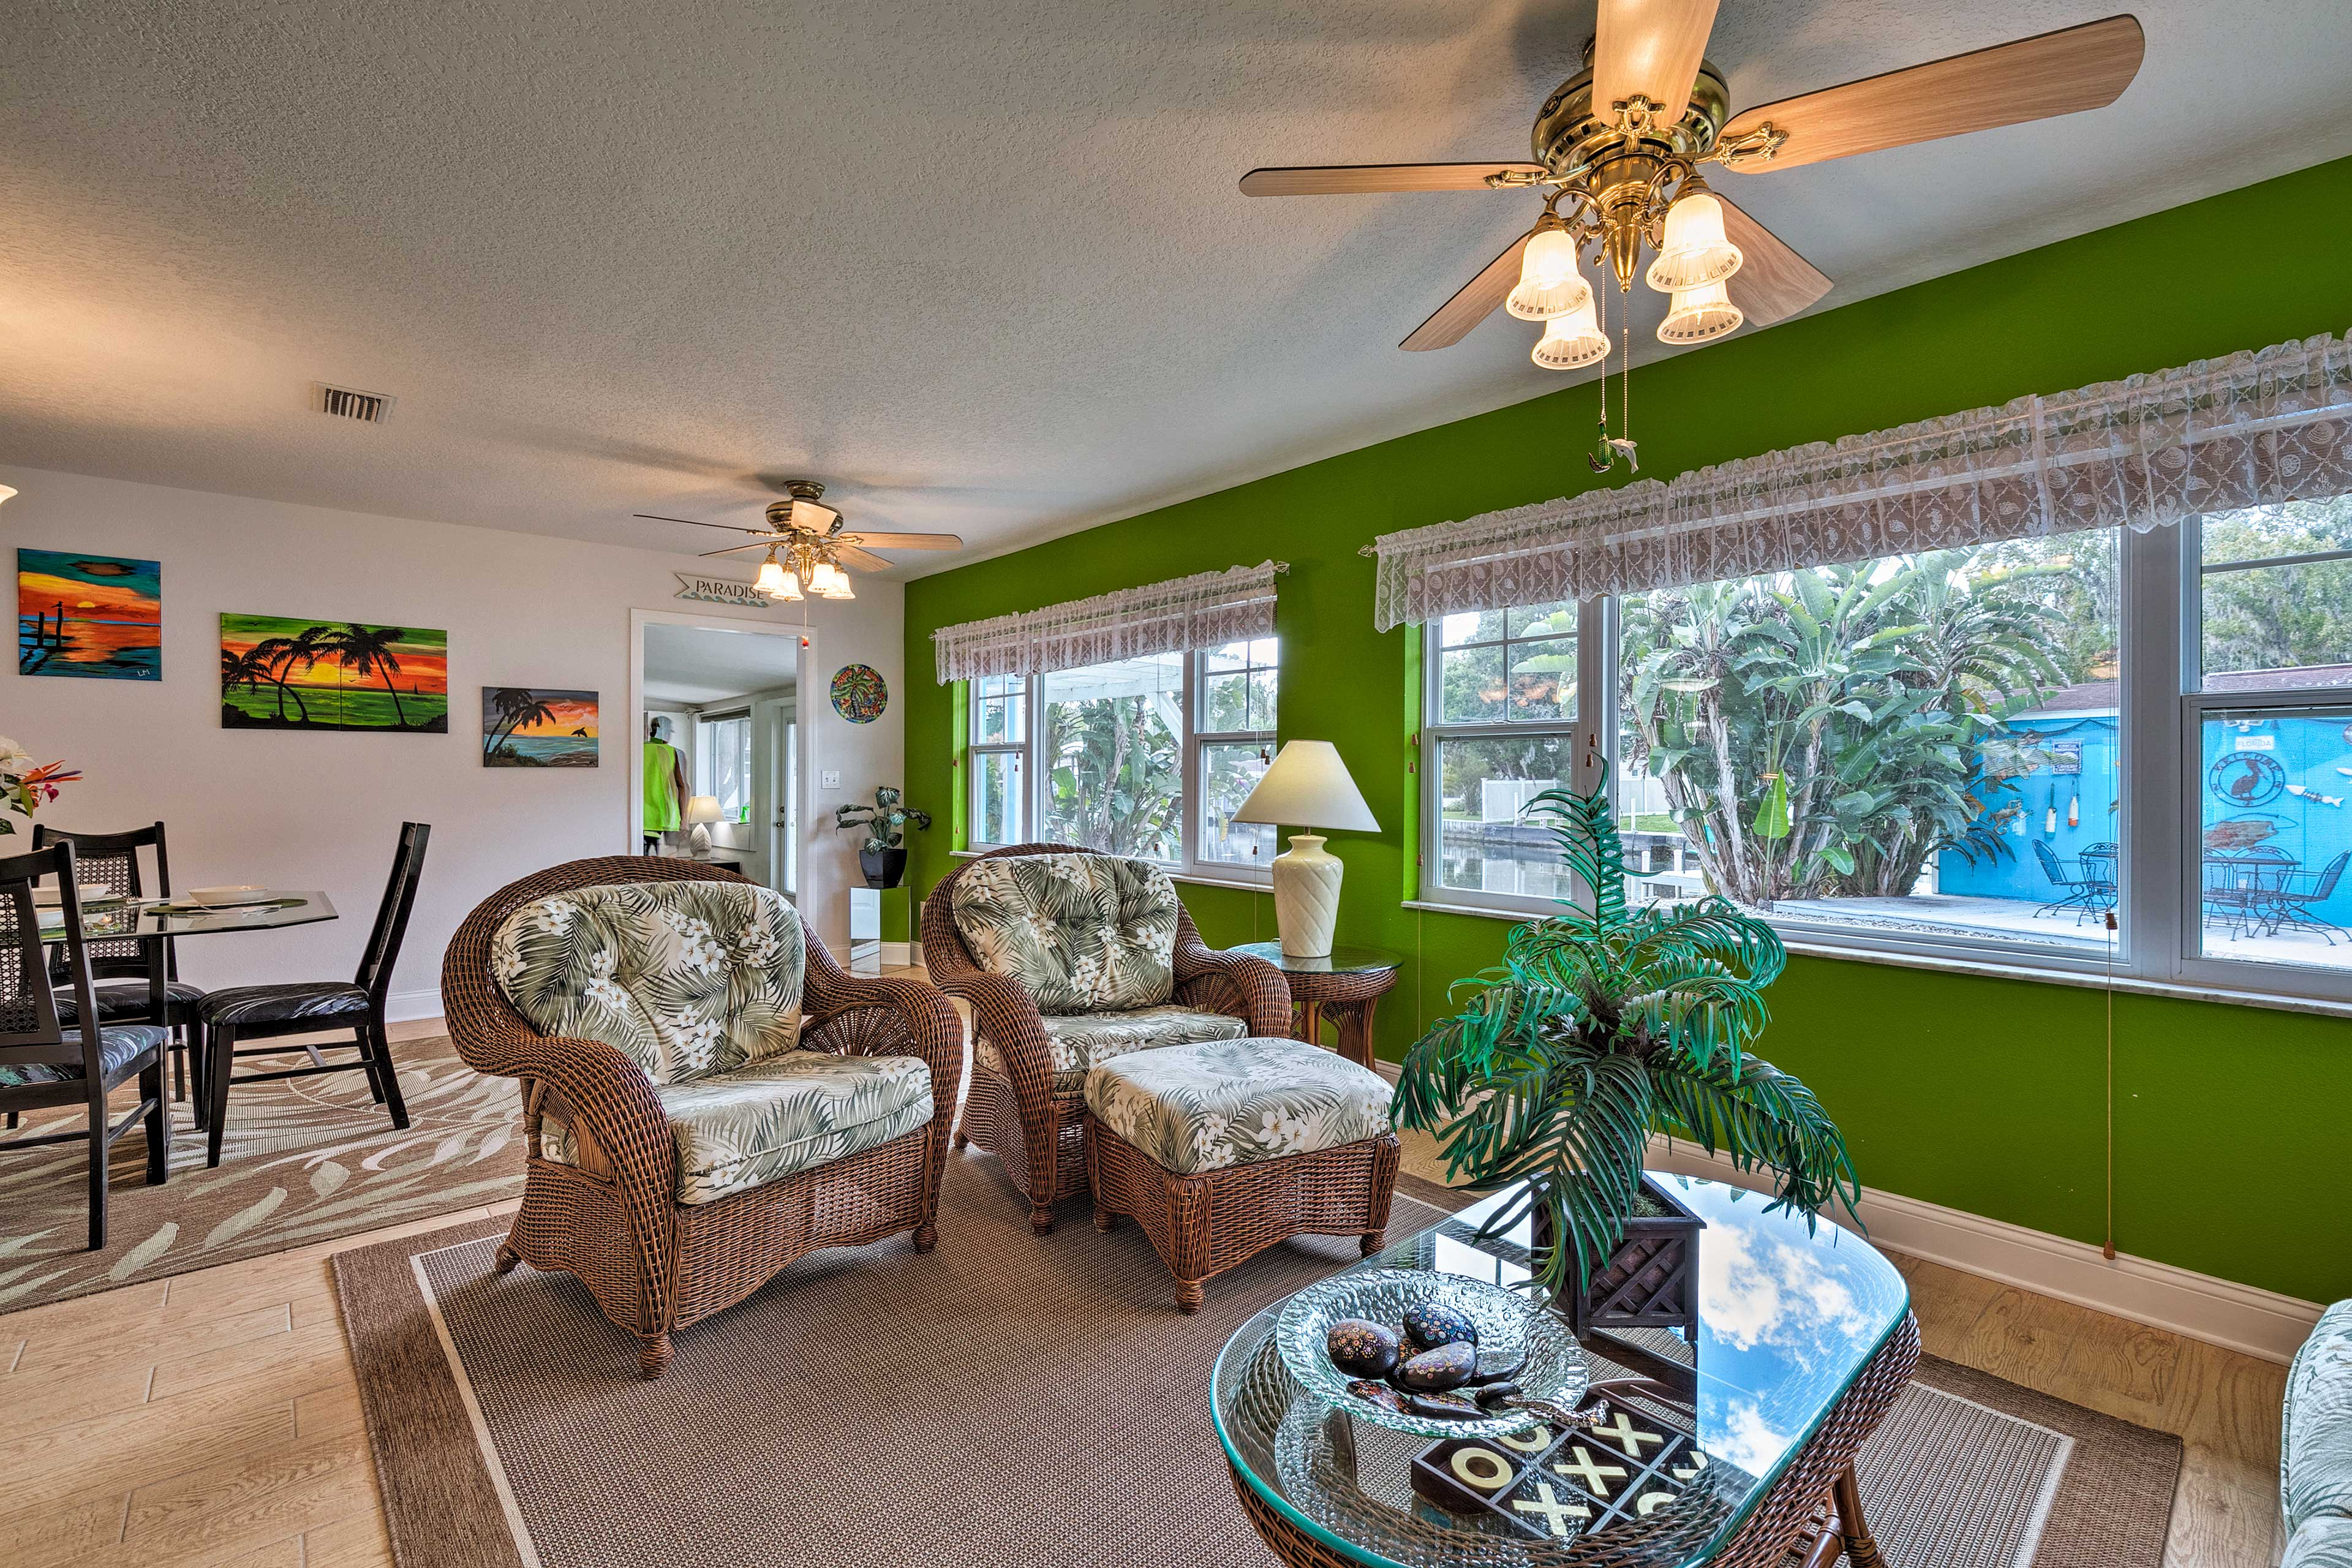 The bright interior is brimming with life!